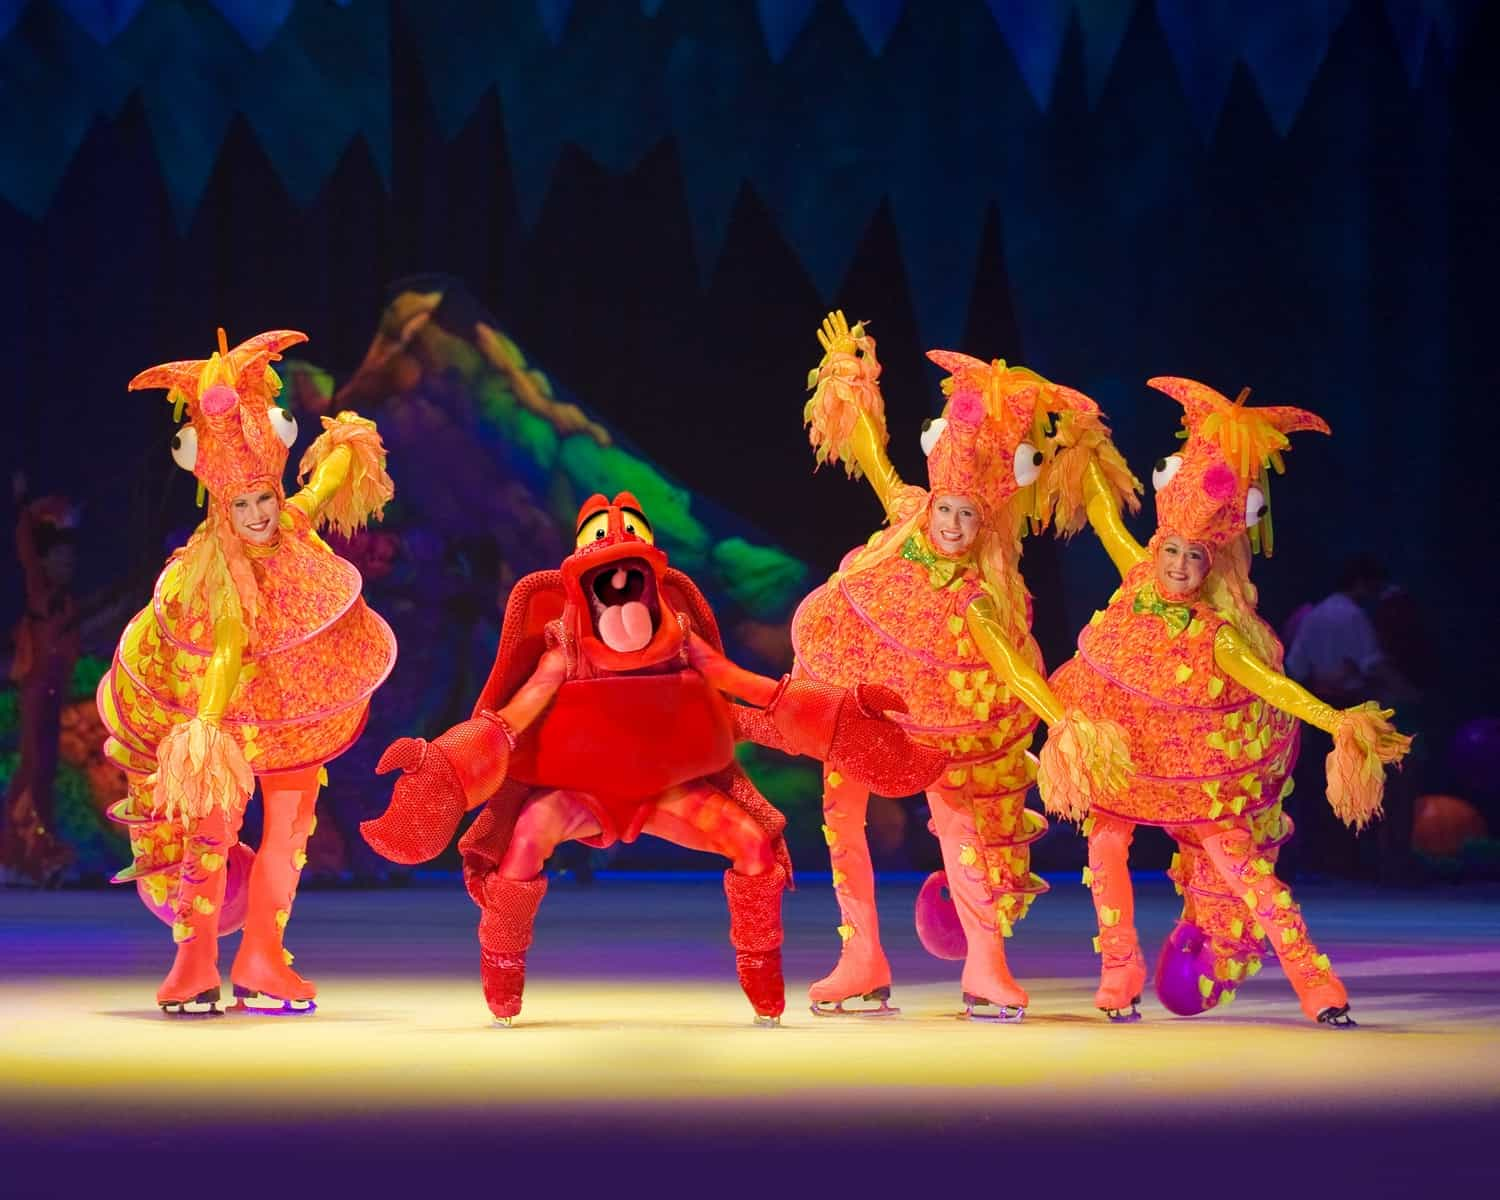 Characters from the little mermaid the crab and some fish on ice skates as part of Disney on Ice Worlds of Enchantment